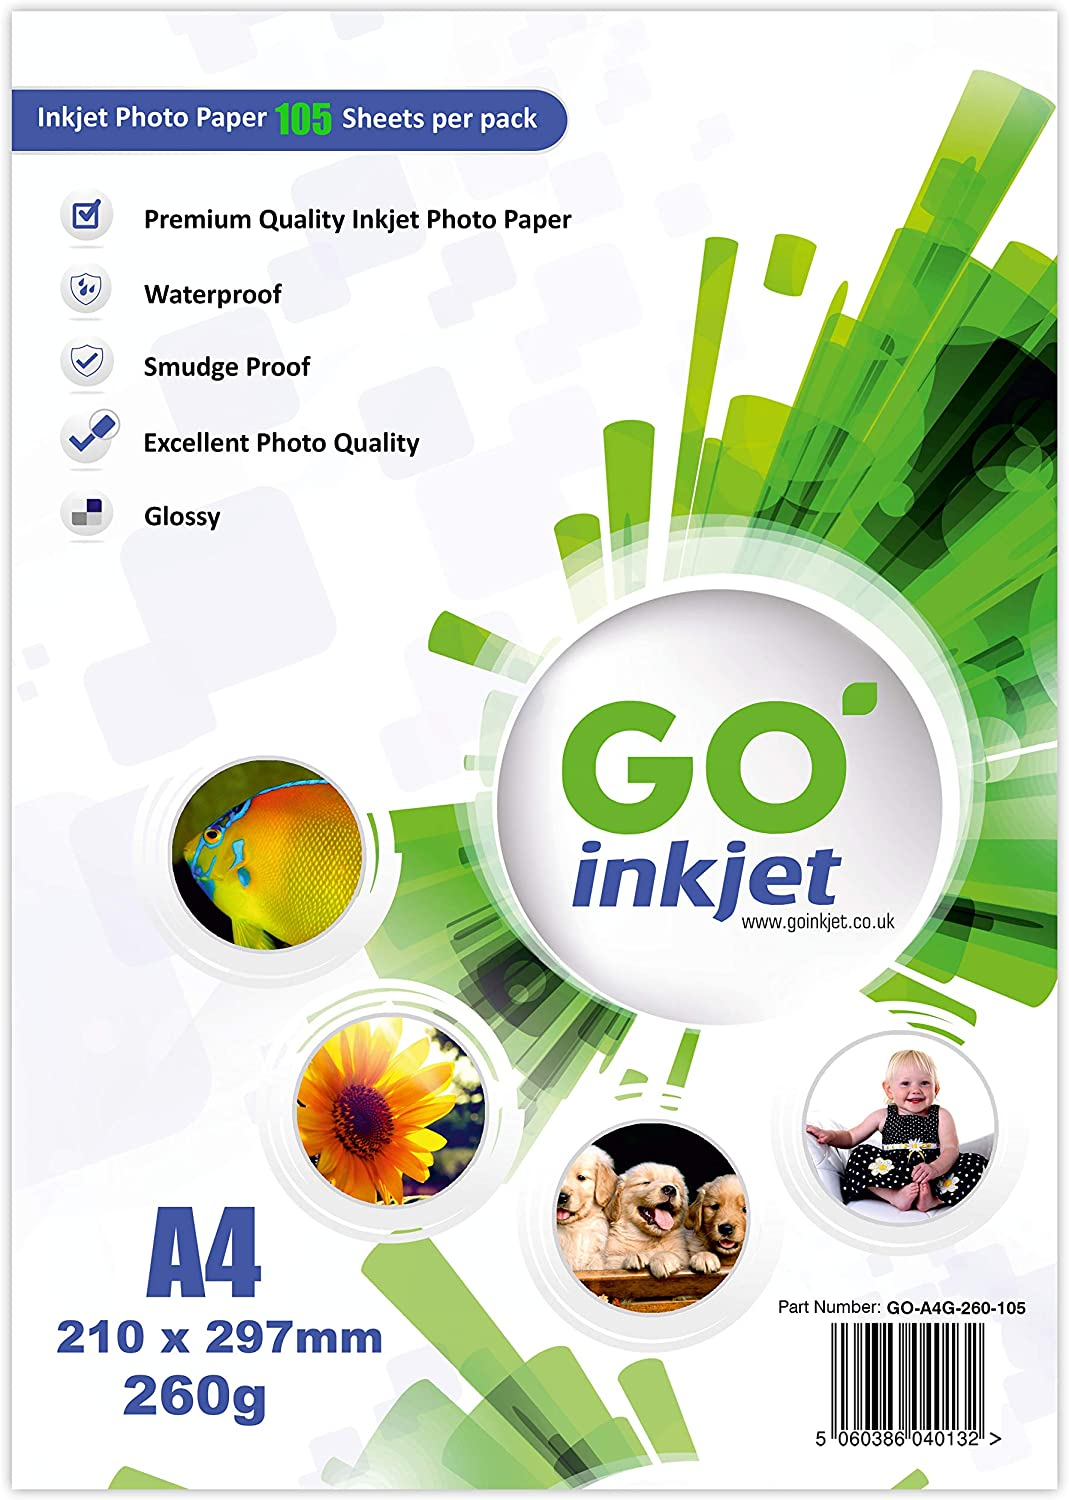 GO Inkjet A4 Glossy Photo Paper, 260gsm, 100 Sheets Plus an Extra 5 Sheets Best Inkjet Photo Paper uk reviews